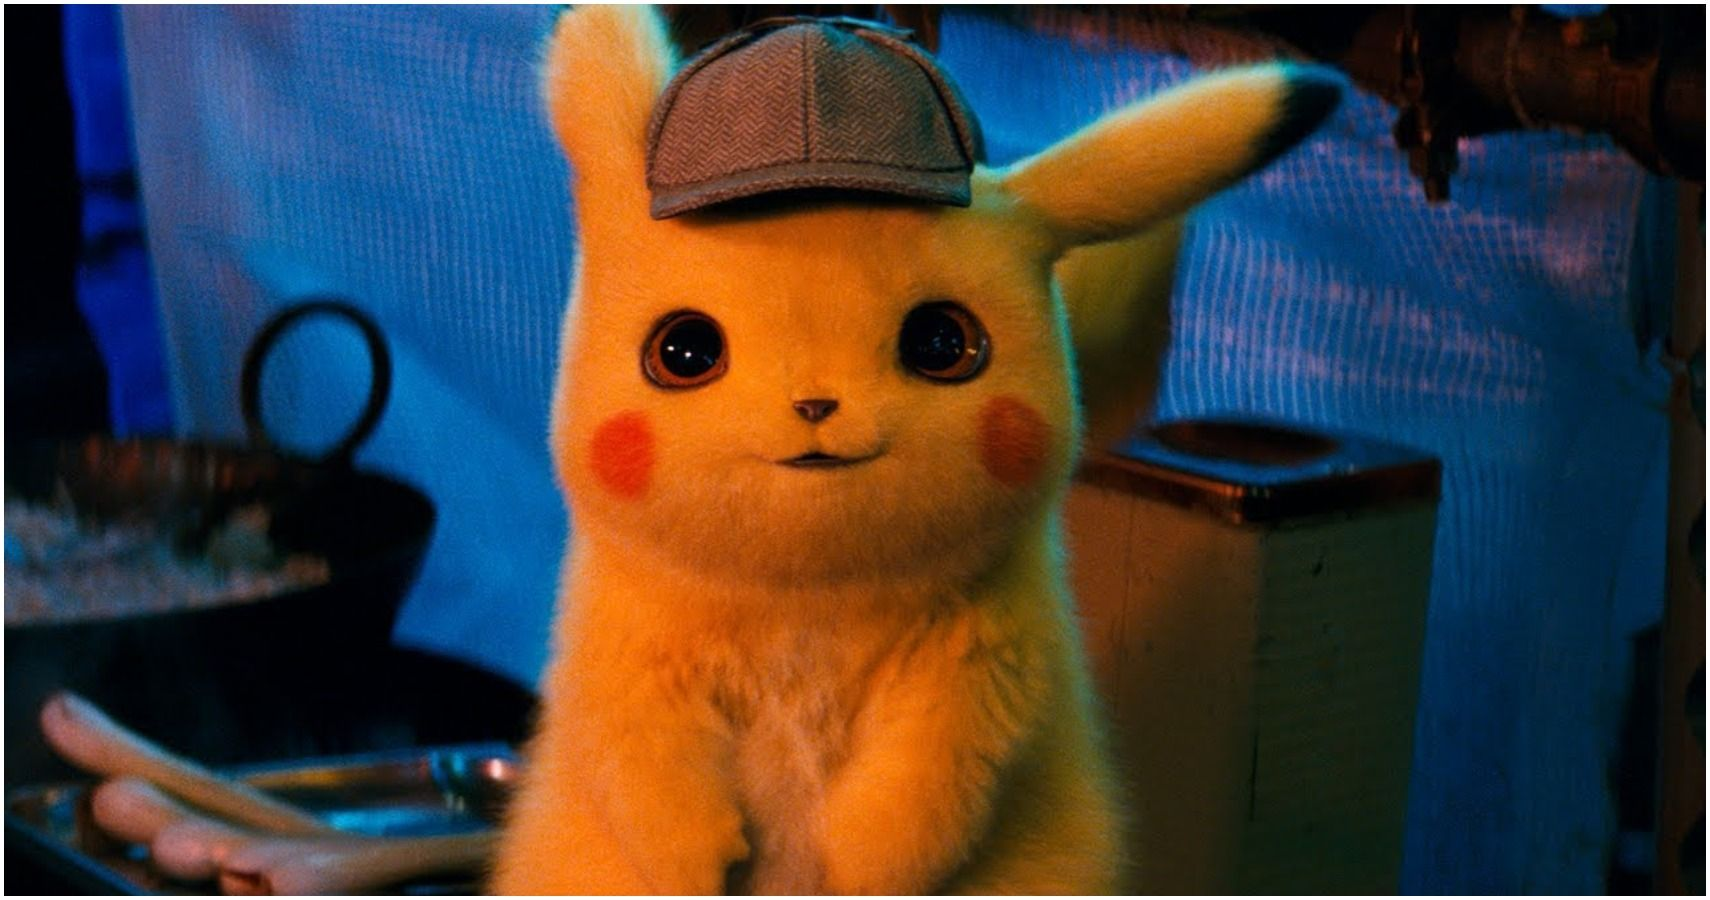 Buy Detective Pikachu Tickets Now Get A Free Trading Card